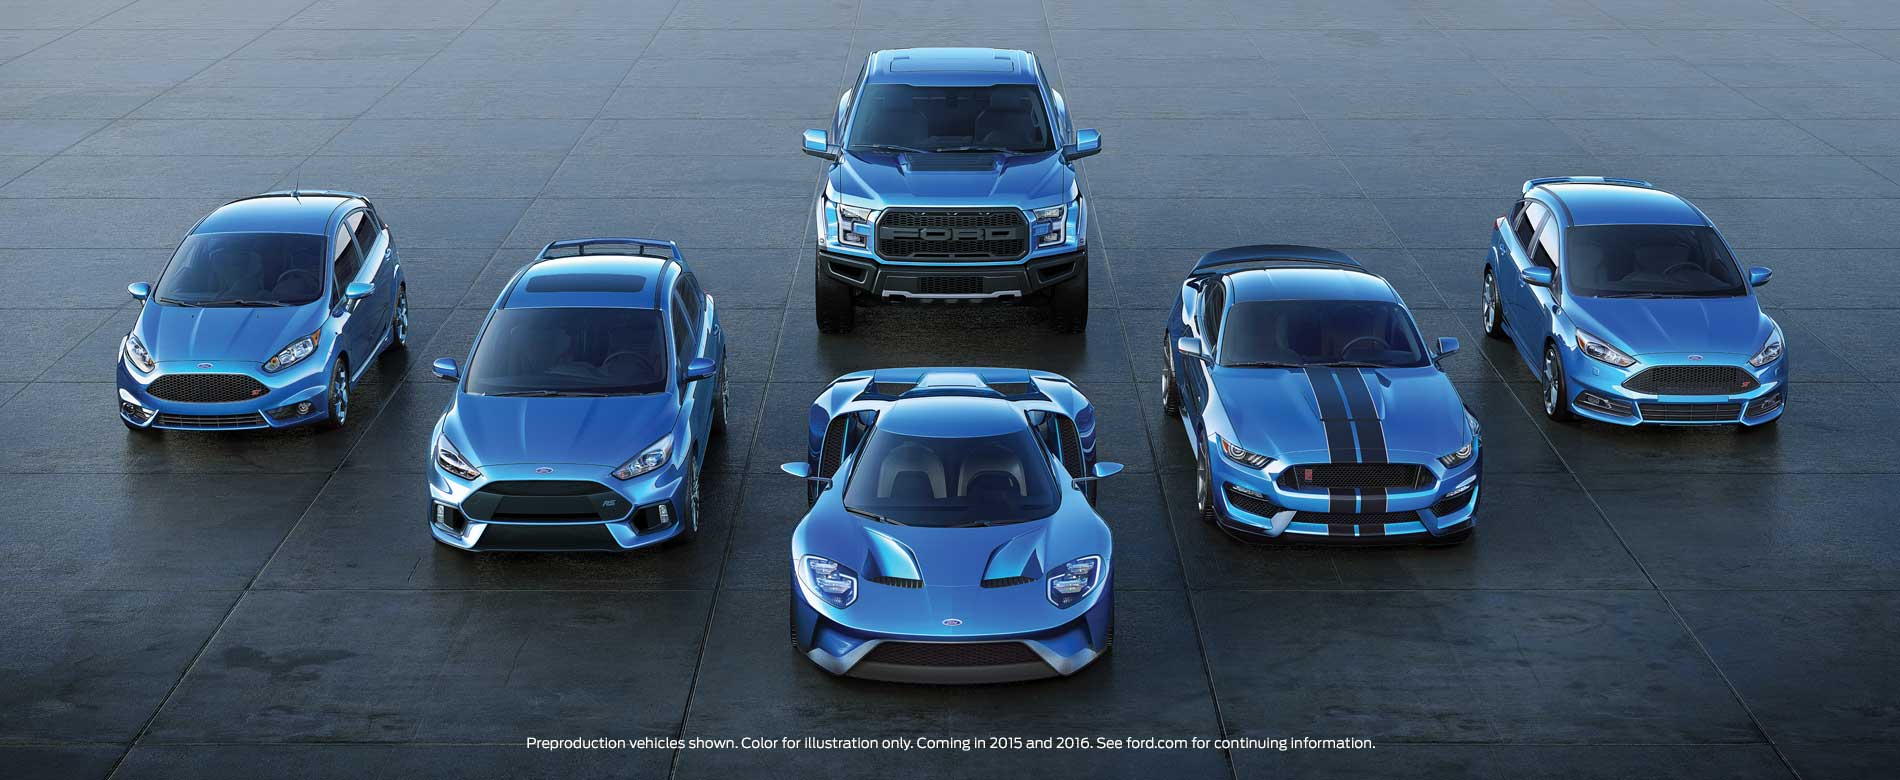 Ford Performance promised 12 models by 2020 any news  updates